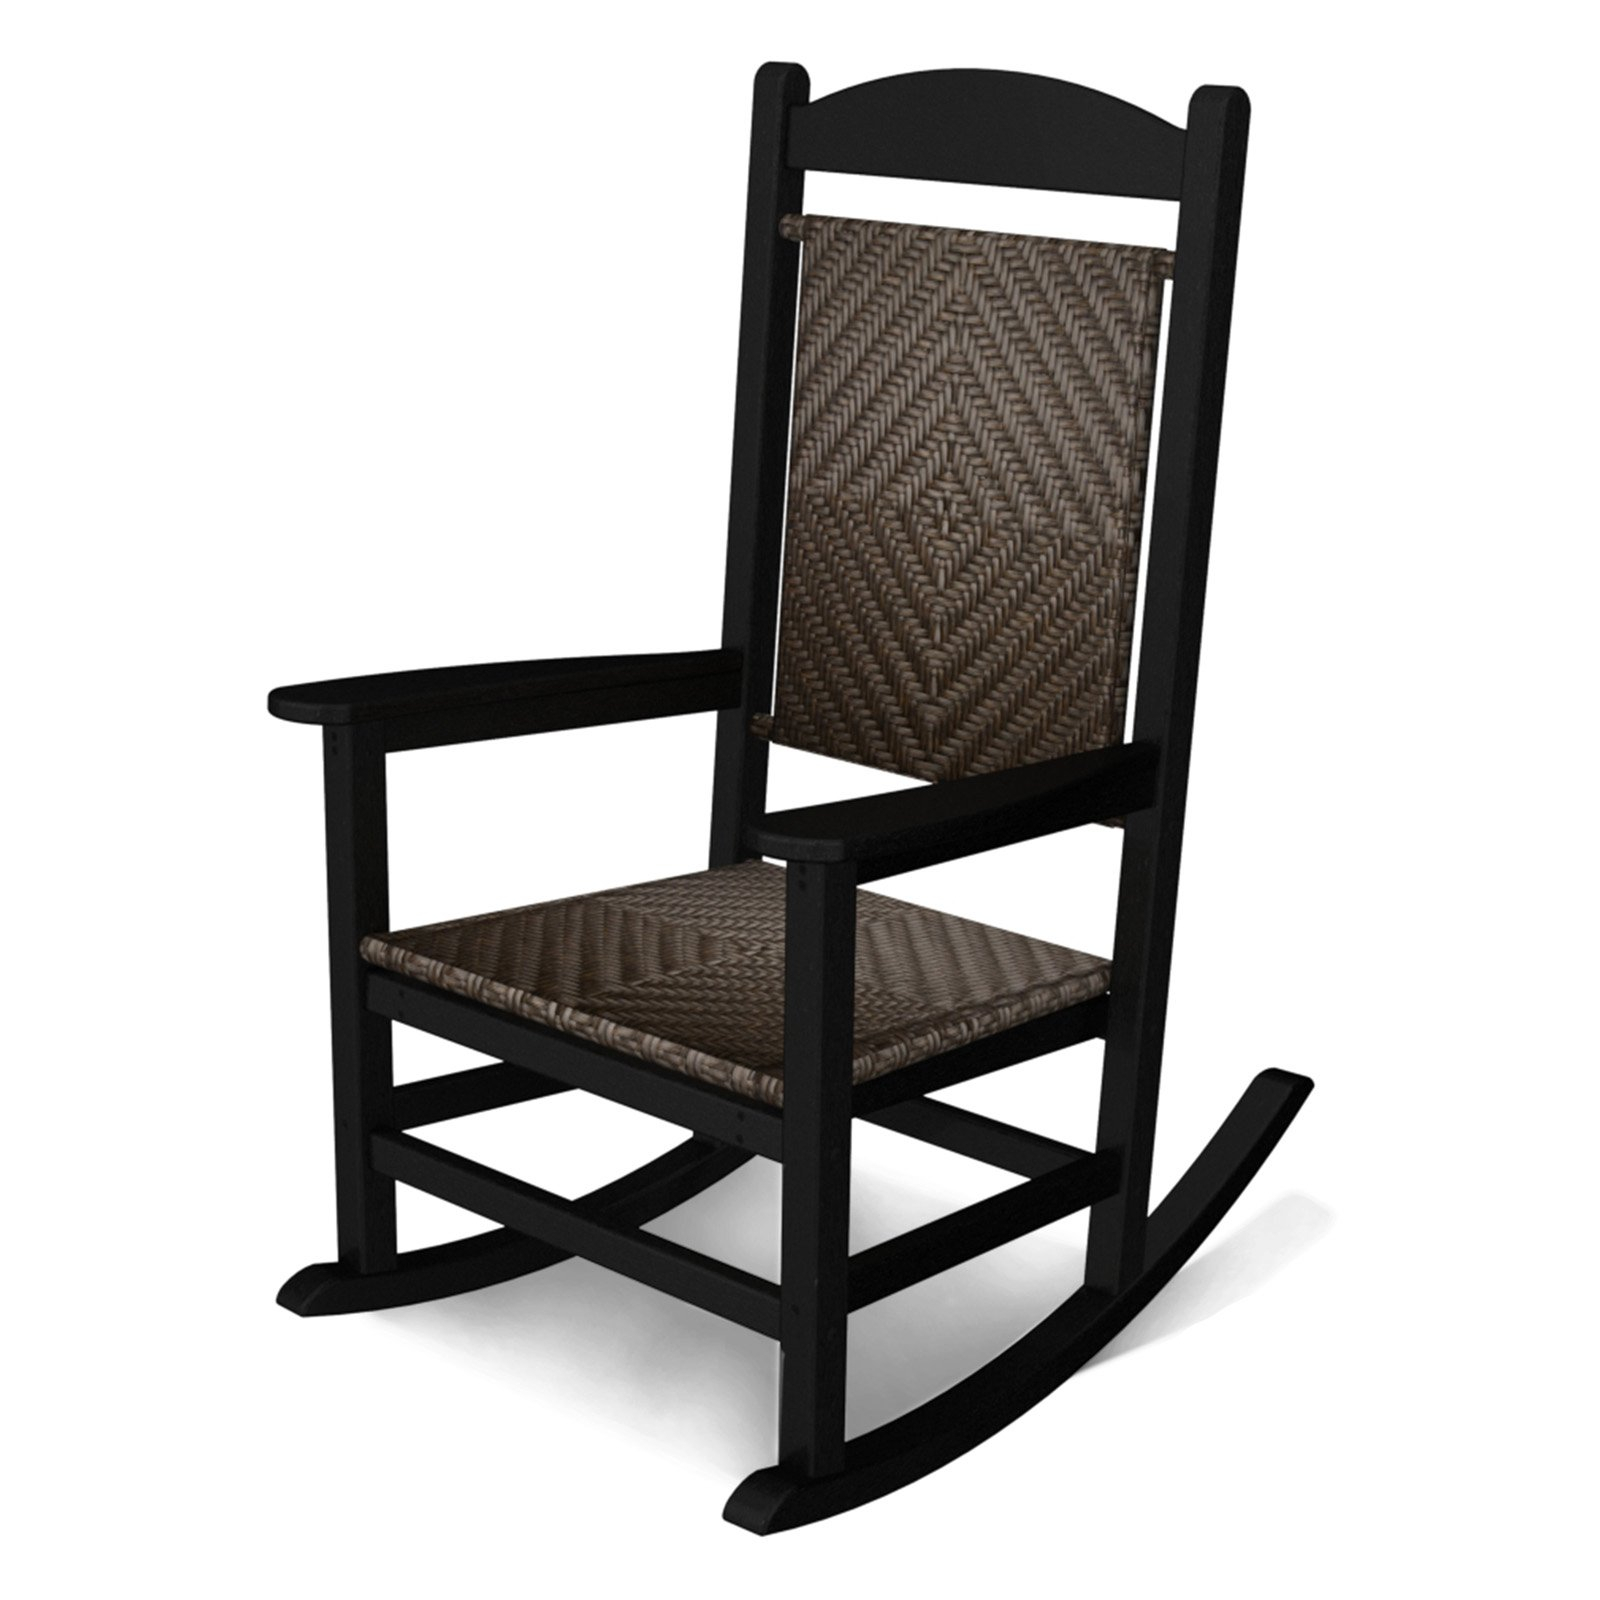 Outdoor Polywoodâ® Presidential Recycled Plastic Woven Intended For Black Plastic Rocking Chairs (#10 of 20)